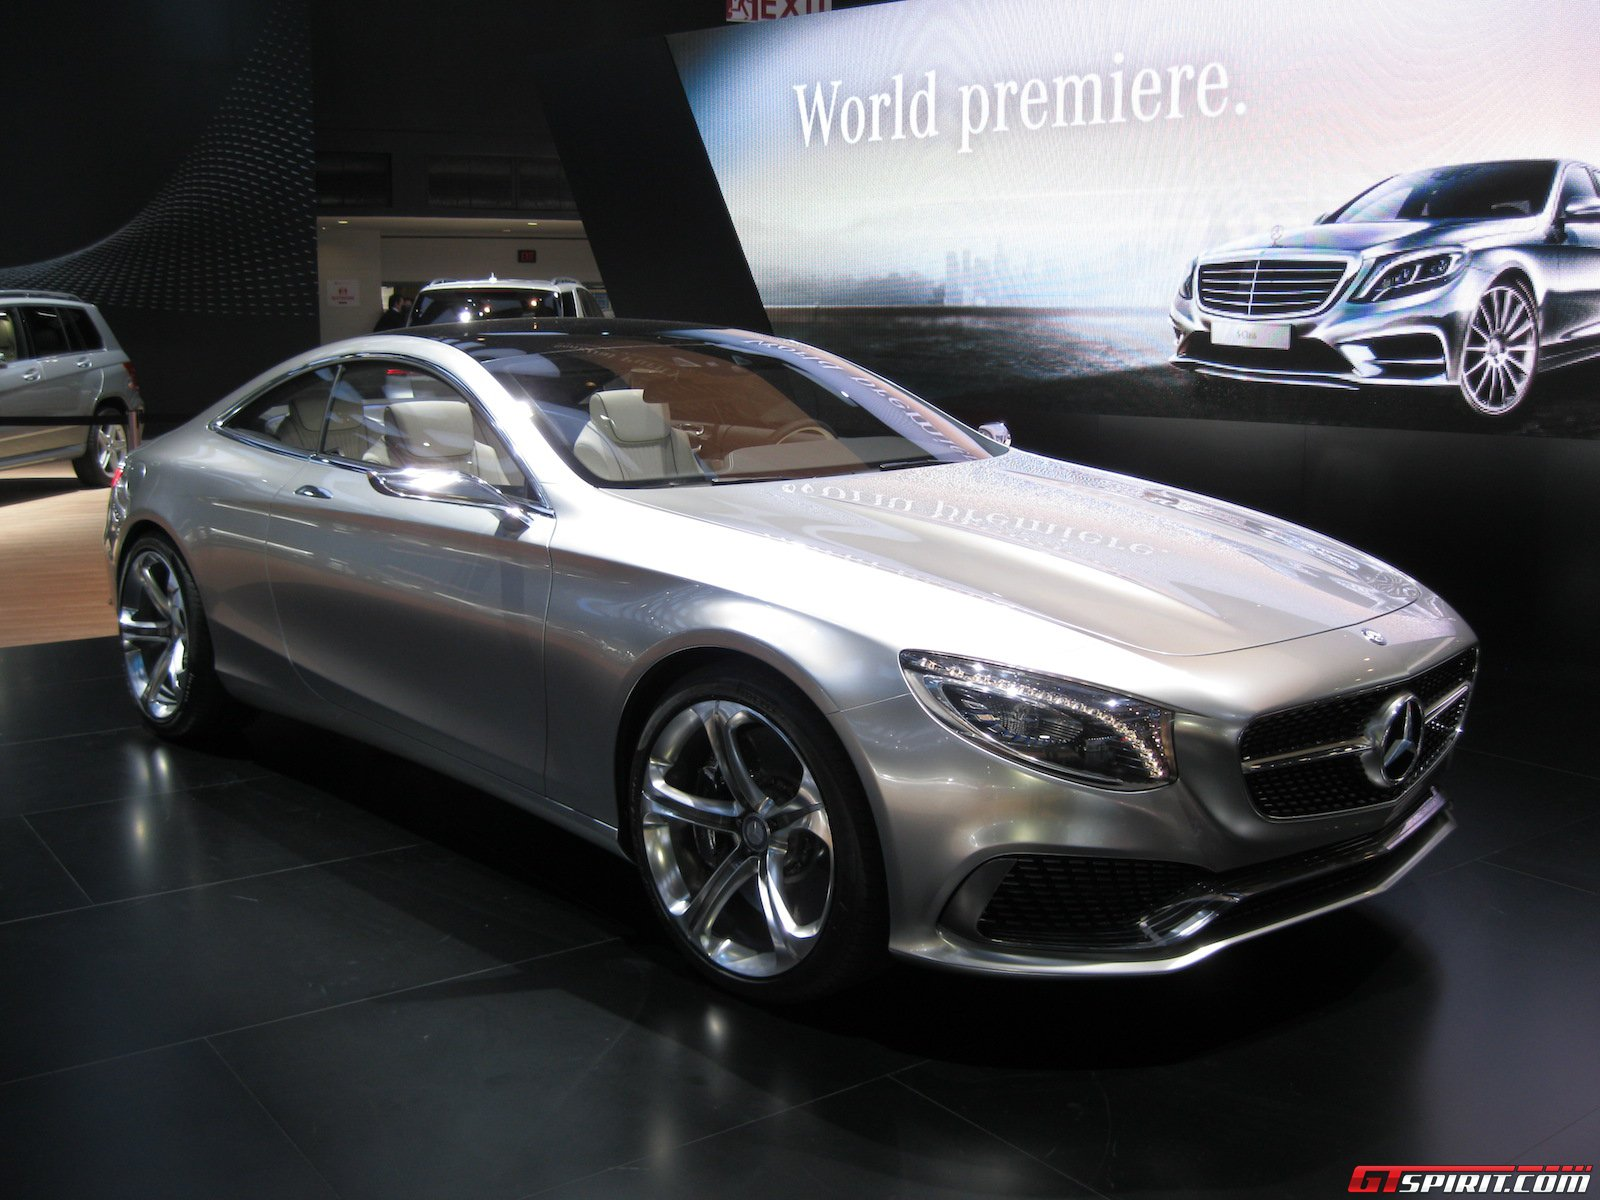 Detroit 2014 mercedes benz s class coupe concept gtspirit for New mercedes benz s class 2014